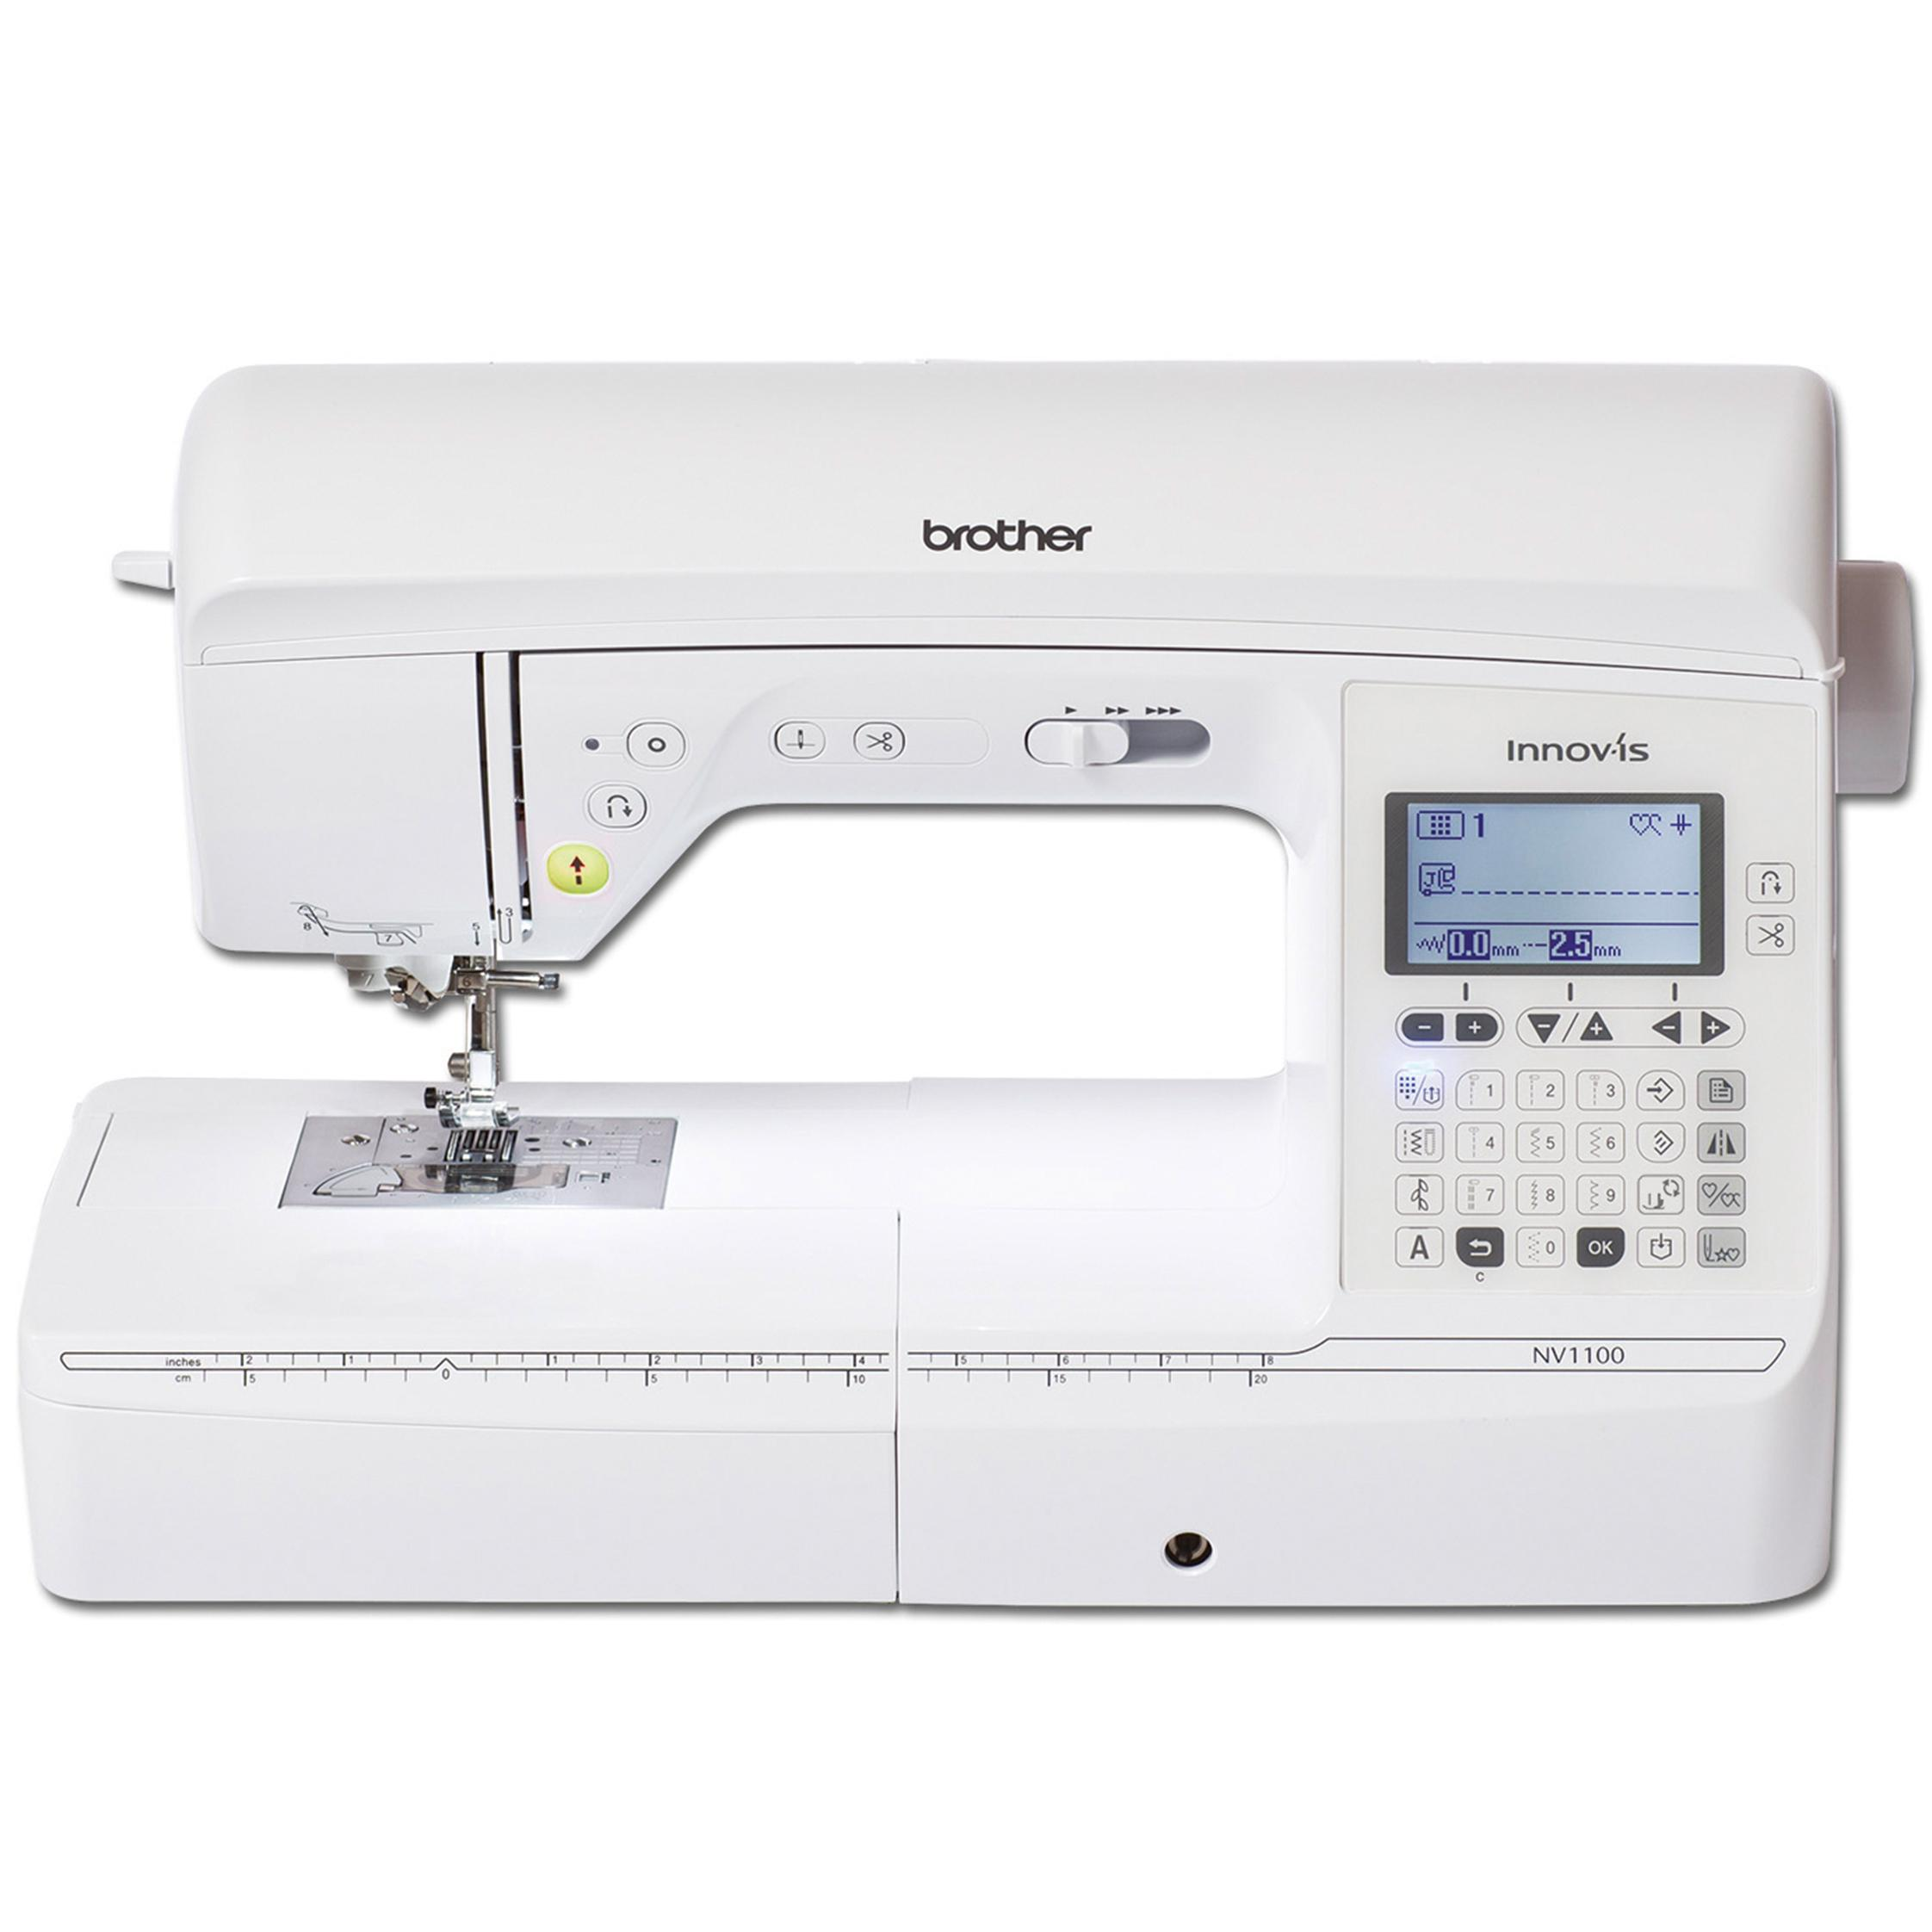 Brother innov-is 1100 | Frank Nutt Sewing Machines Ltd ...